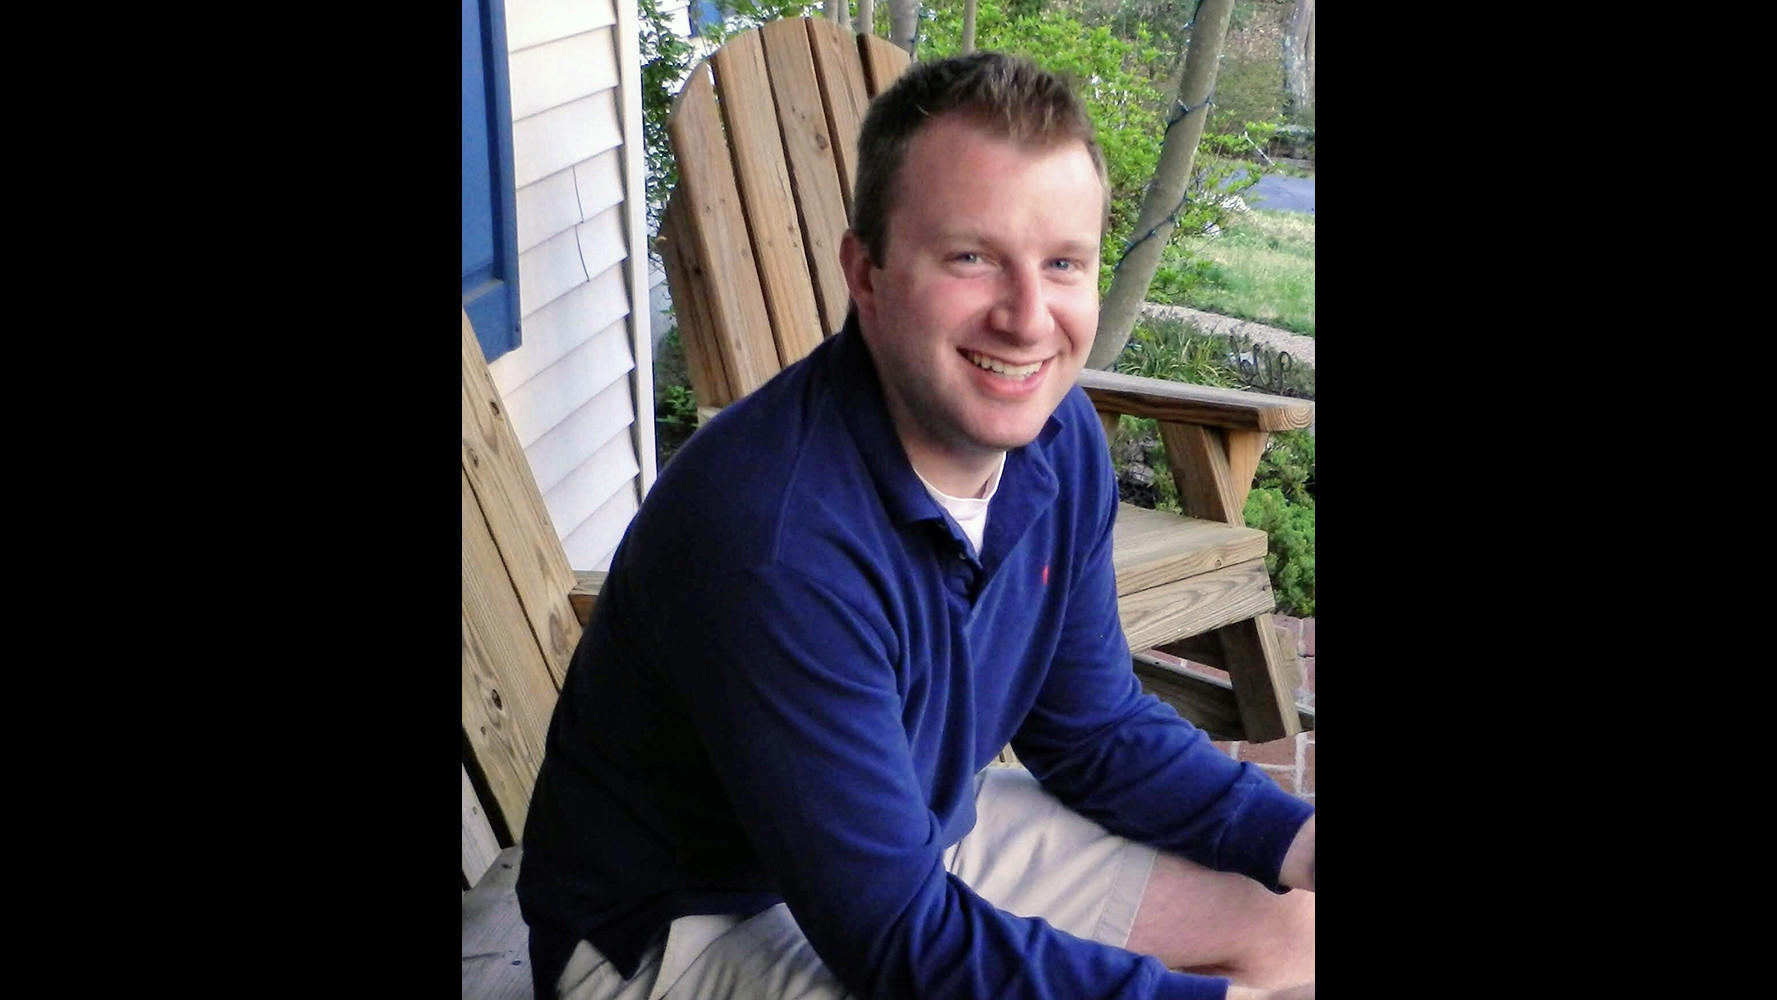 Police: Real estate sales rep found dead in Hanover model home in apparent homicide